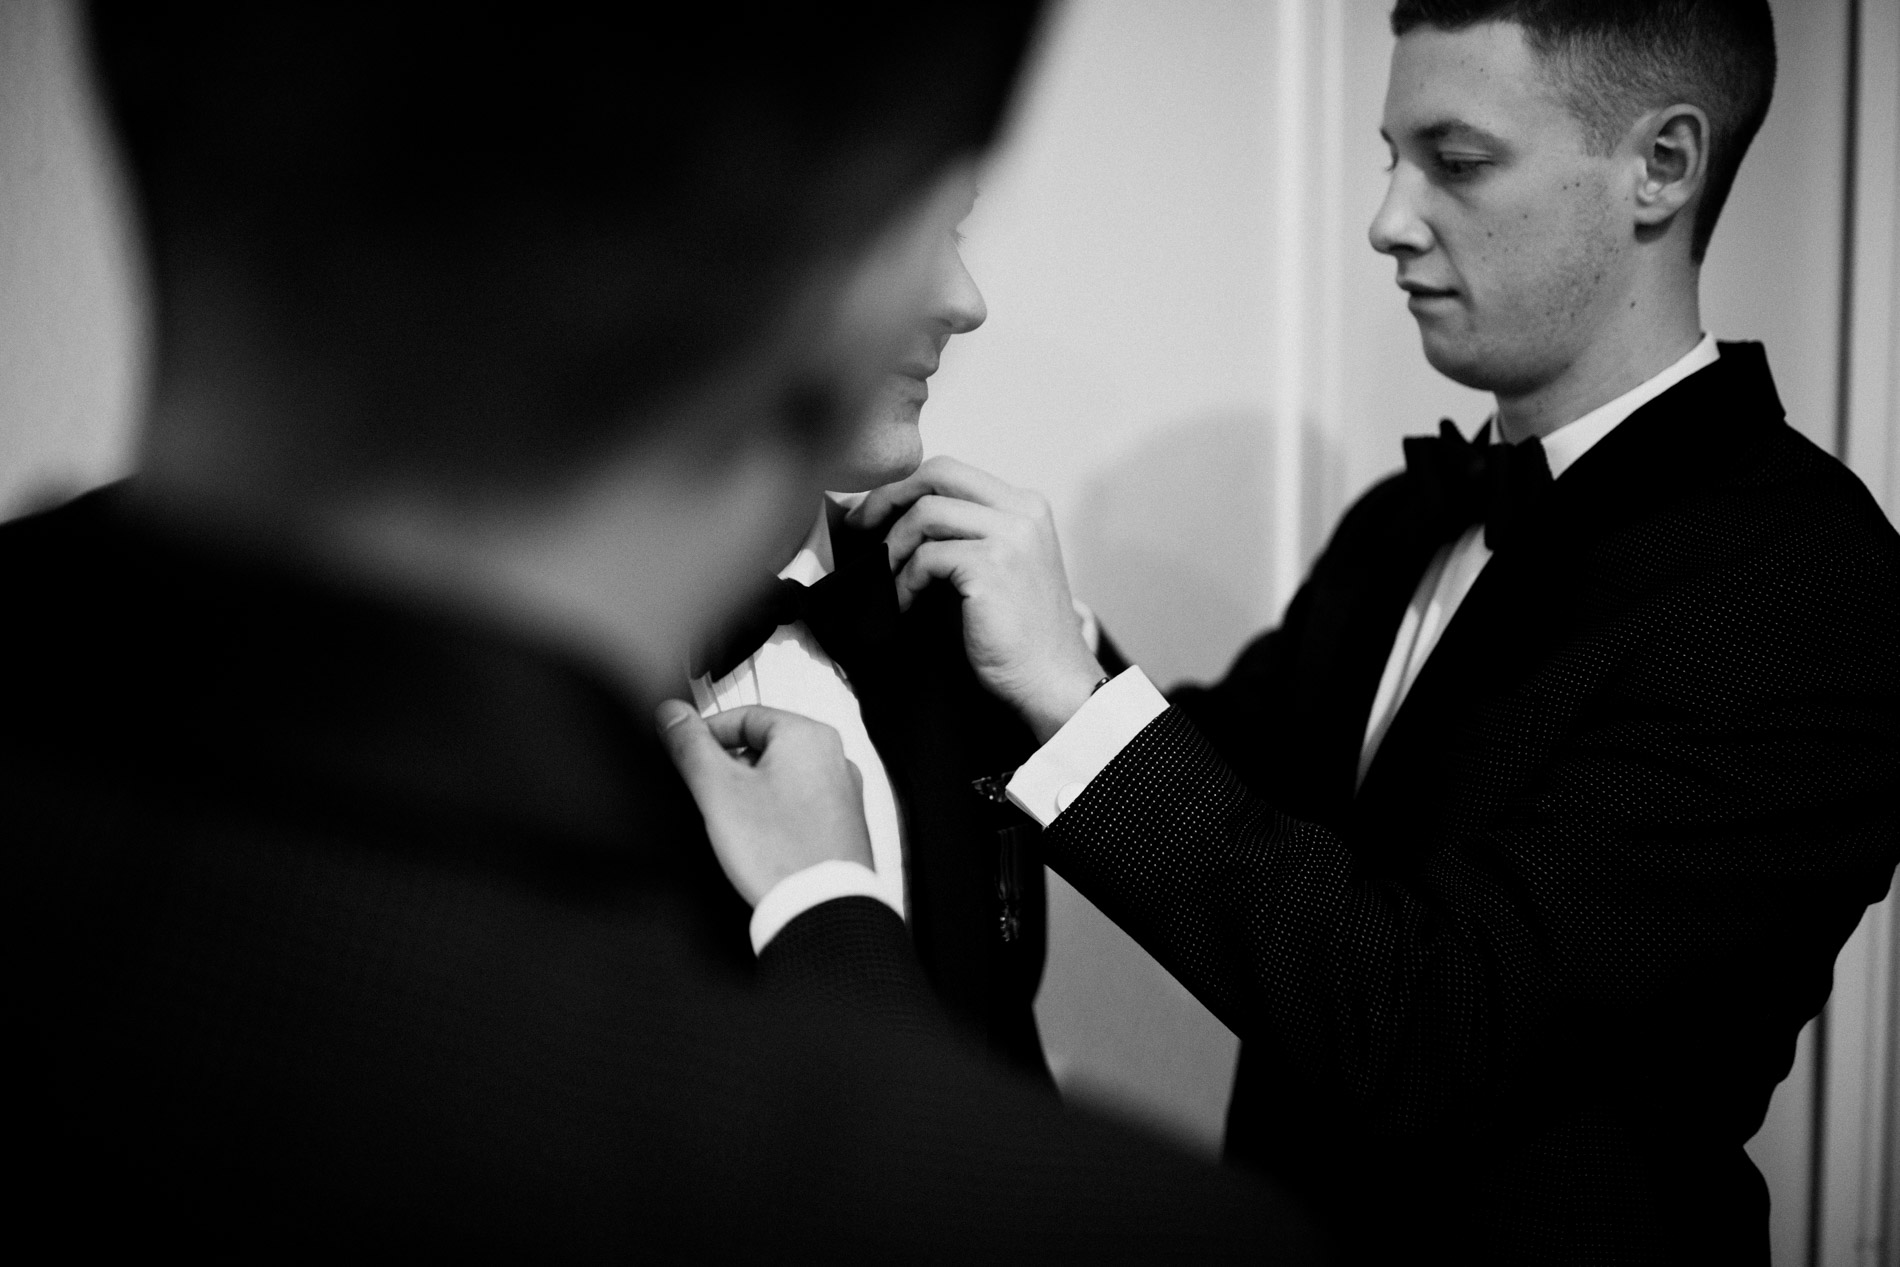 groom getting ready for wedding day